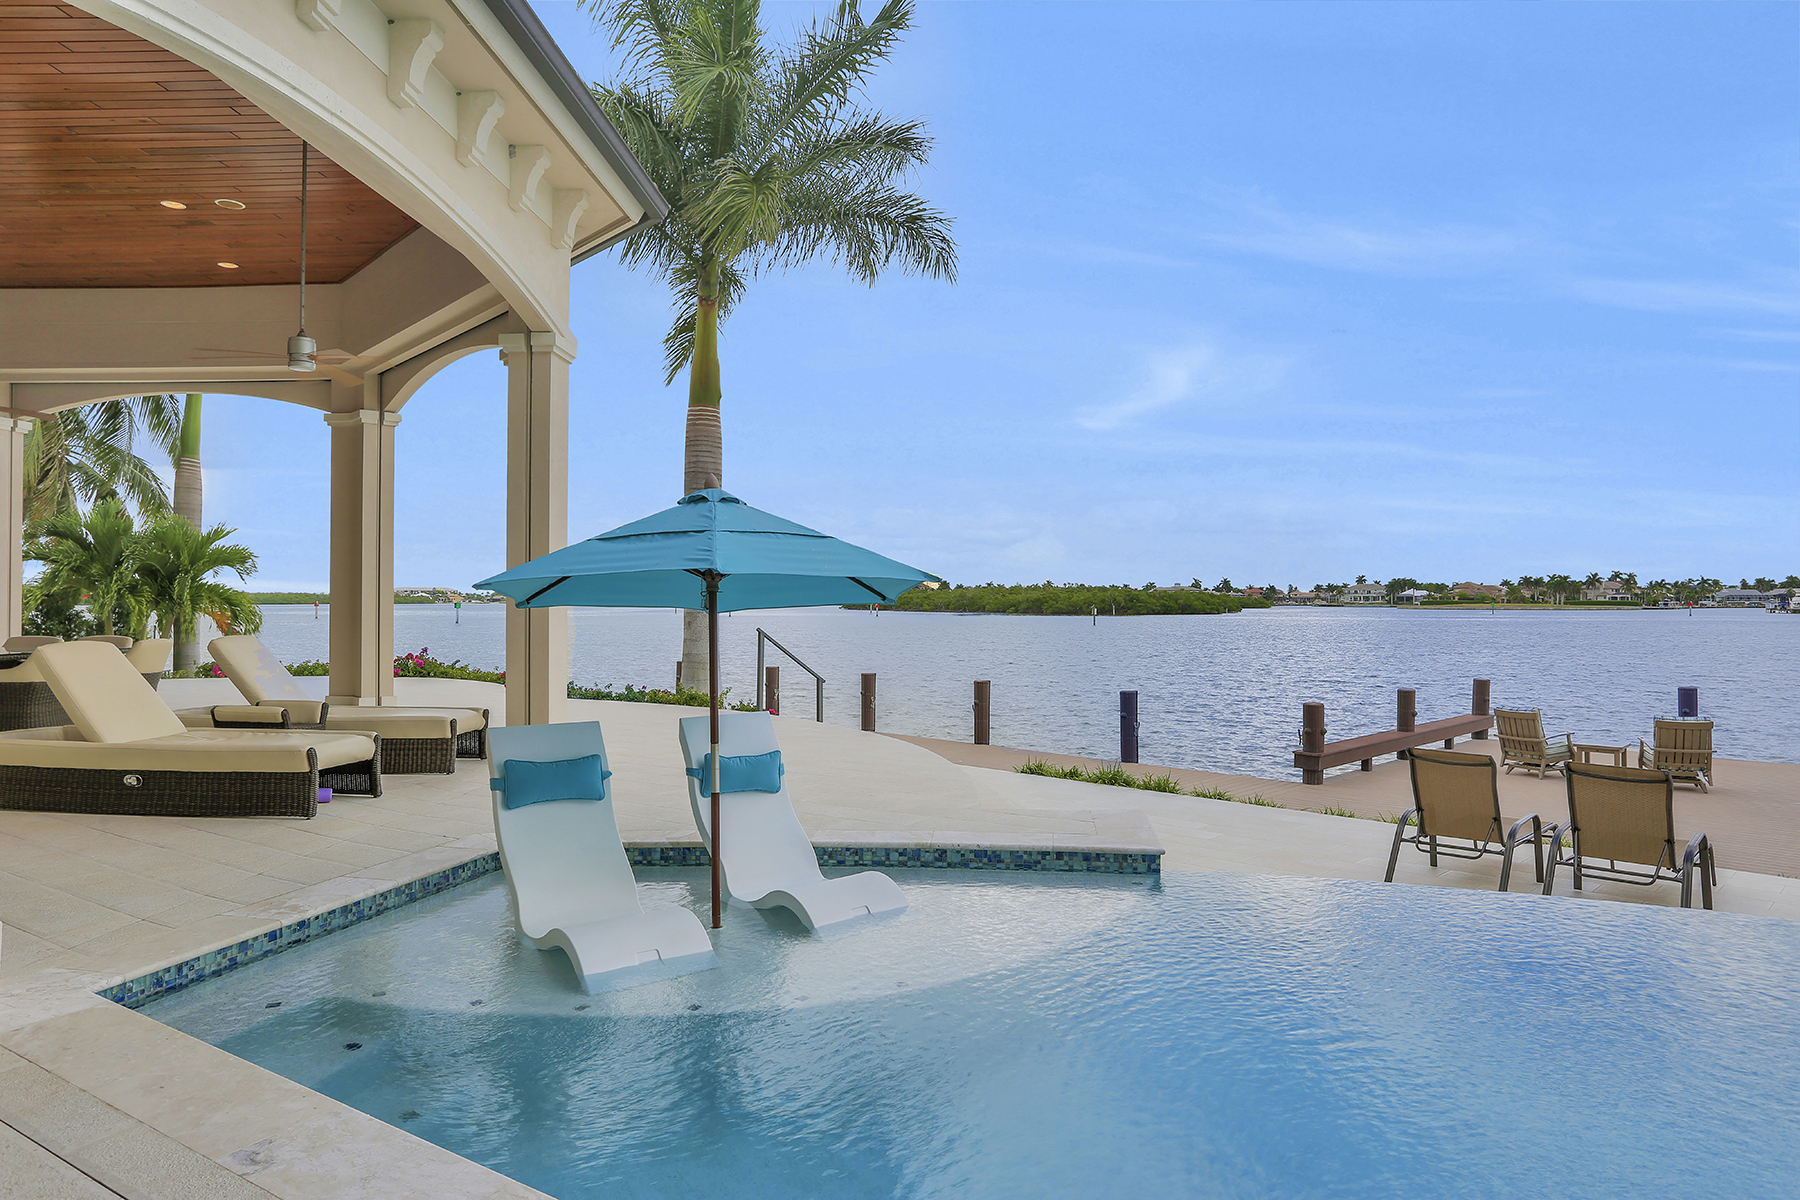 Single Family Homes for Sale at MARCO ISLAND 495 Maunder Court Marco Island, Florida 34145 United States